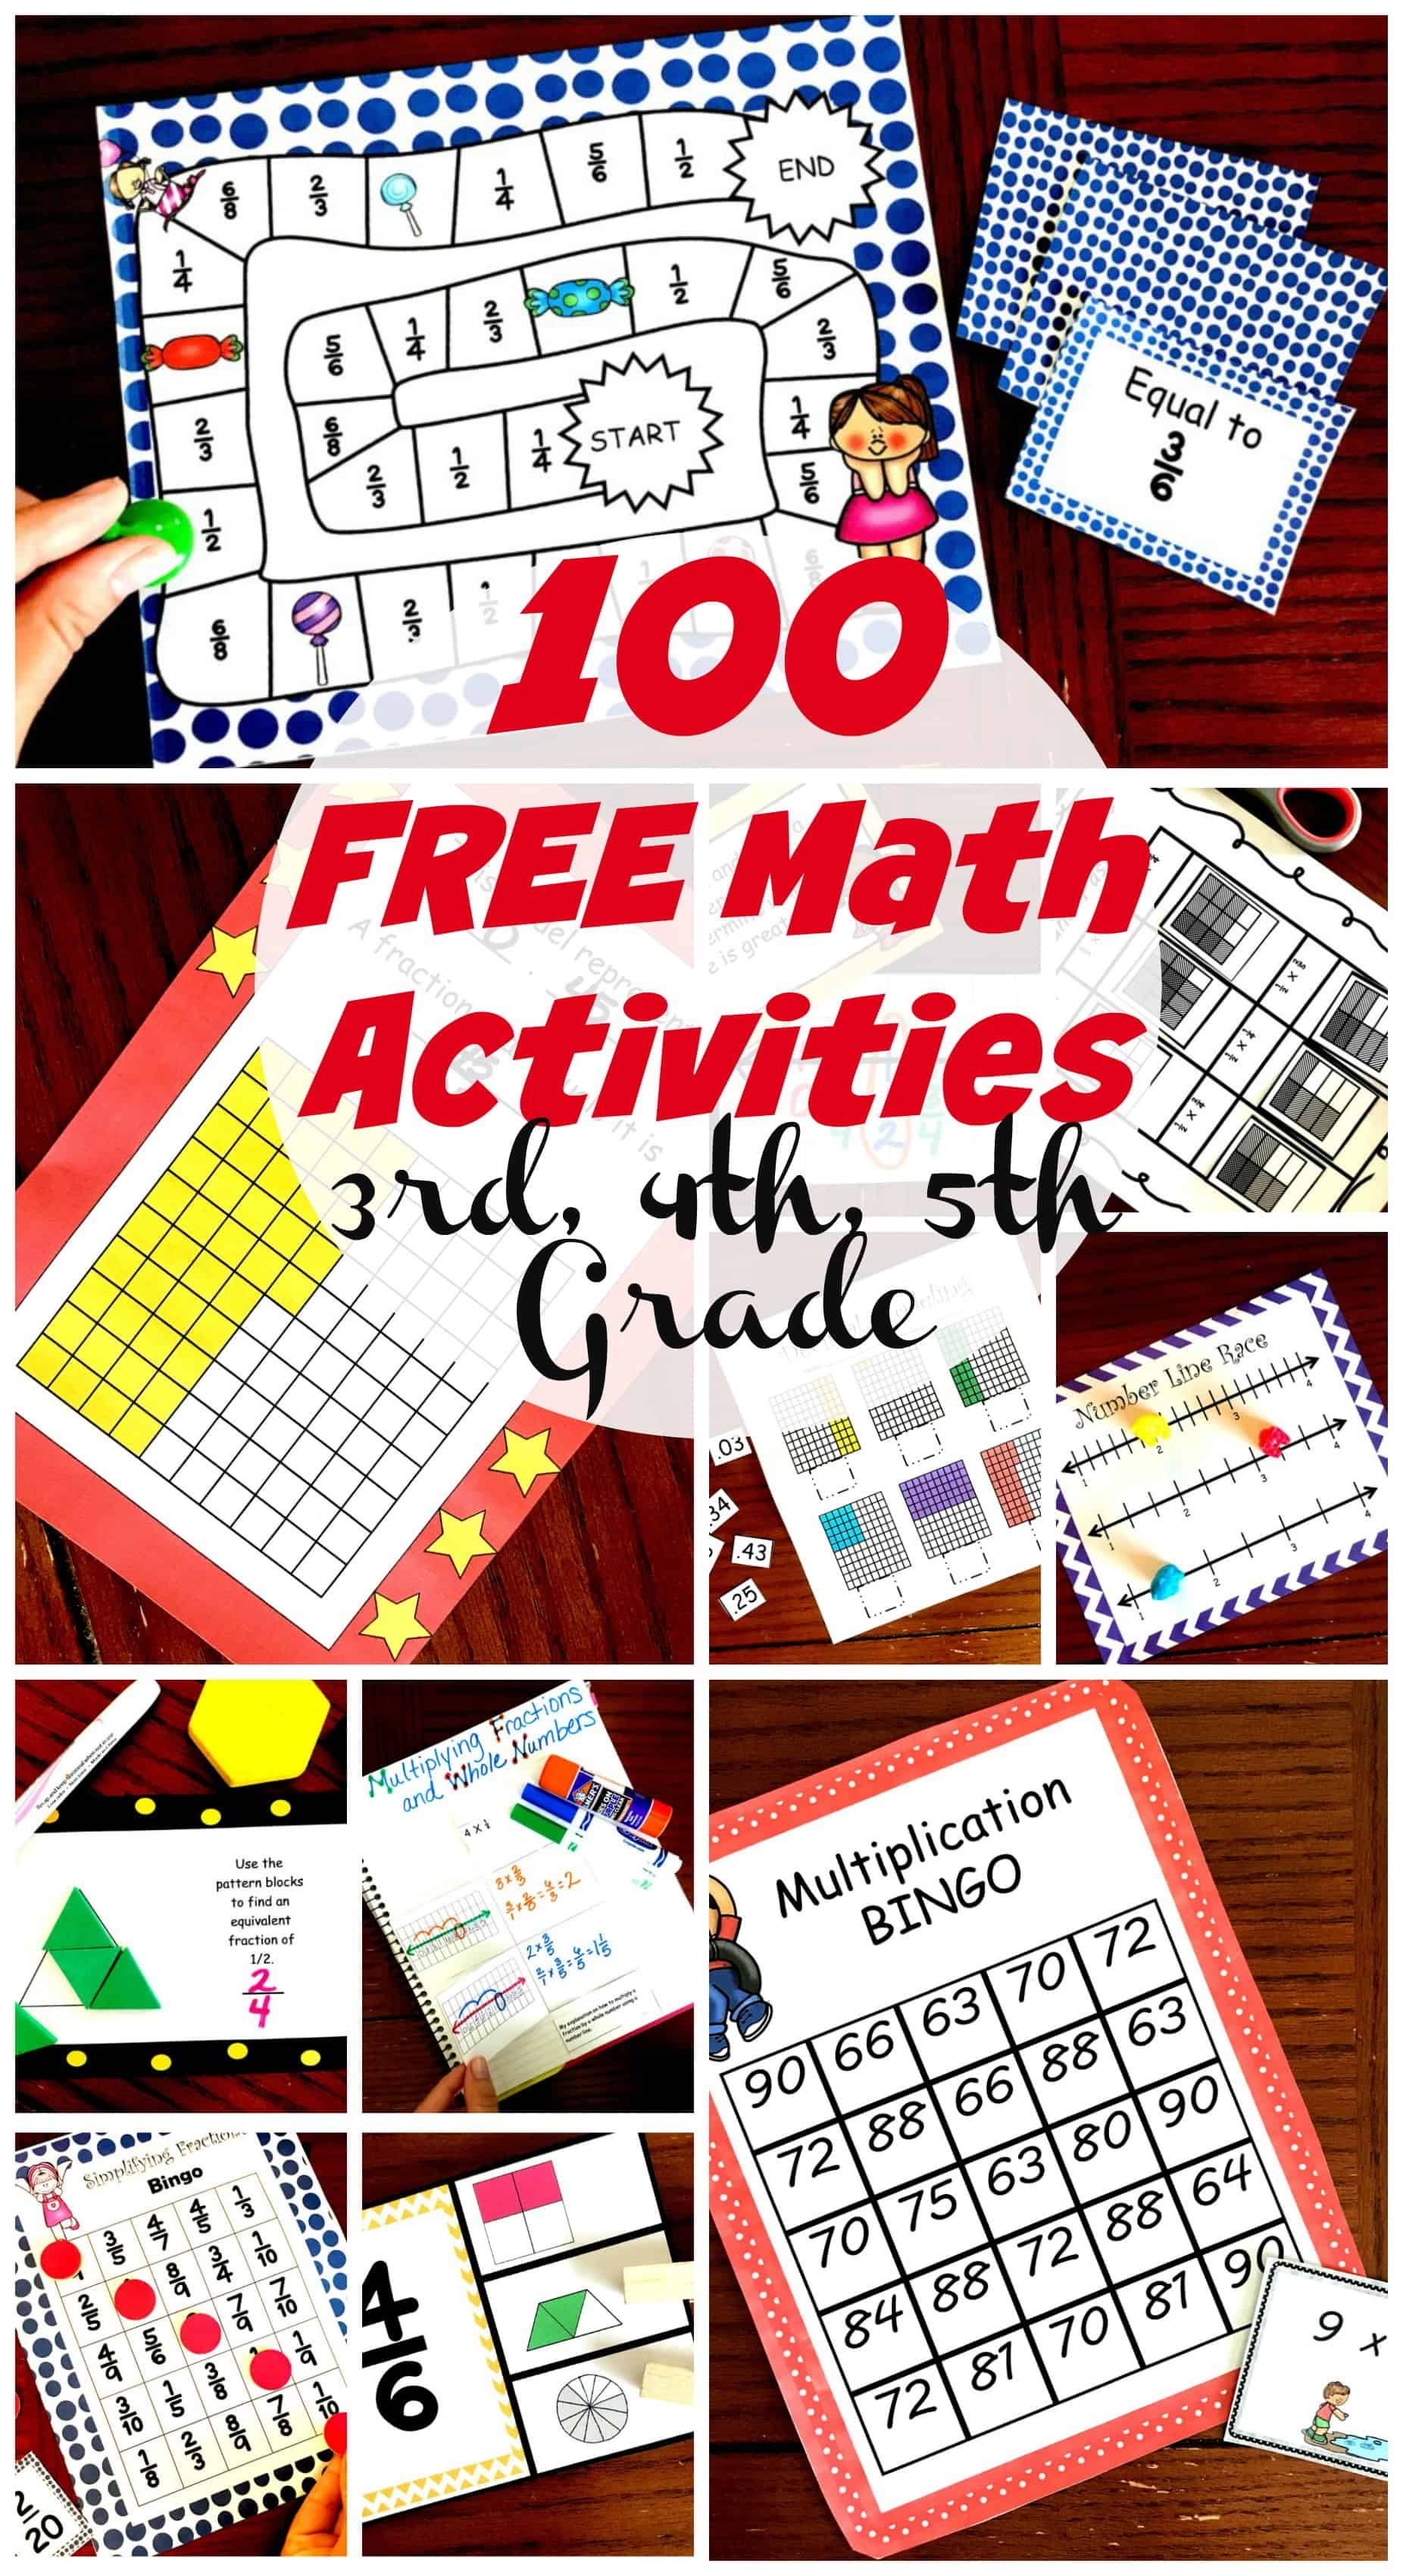 graphic about Vale Design Free Printable Maze identified as 50 Incredible and Enjoyable Math Routines for 3rd, 4th, and 5th